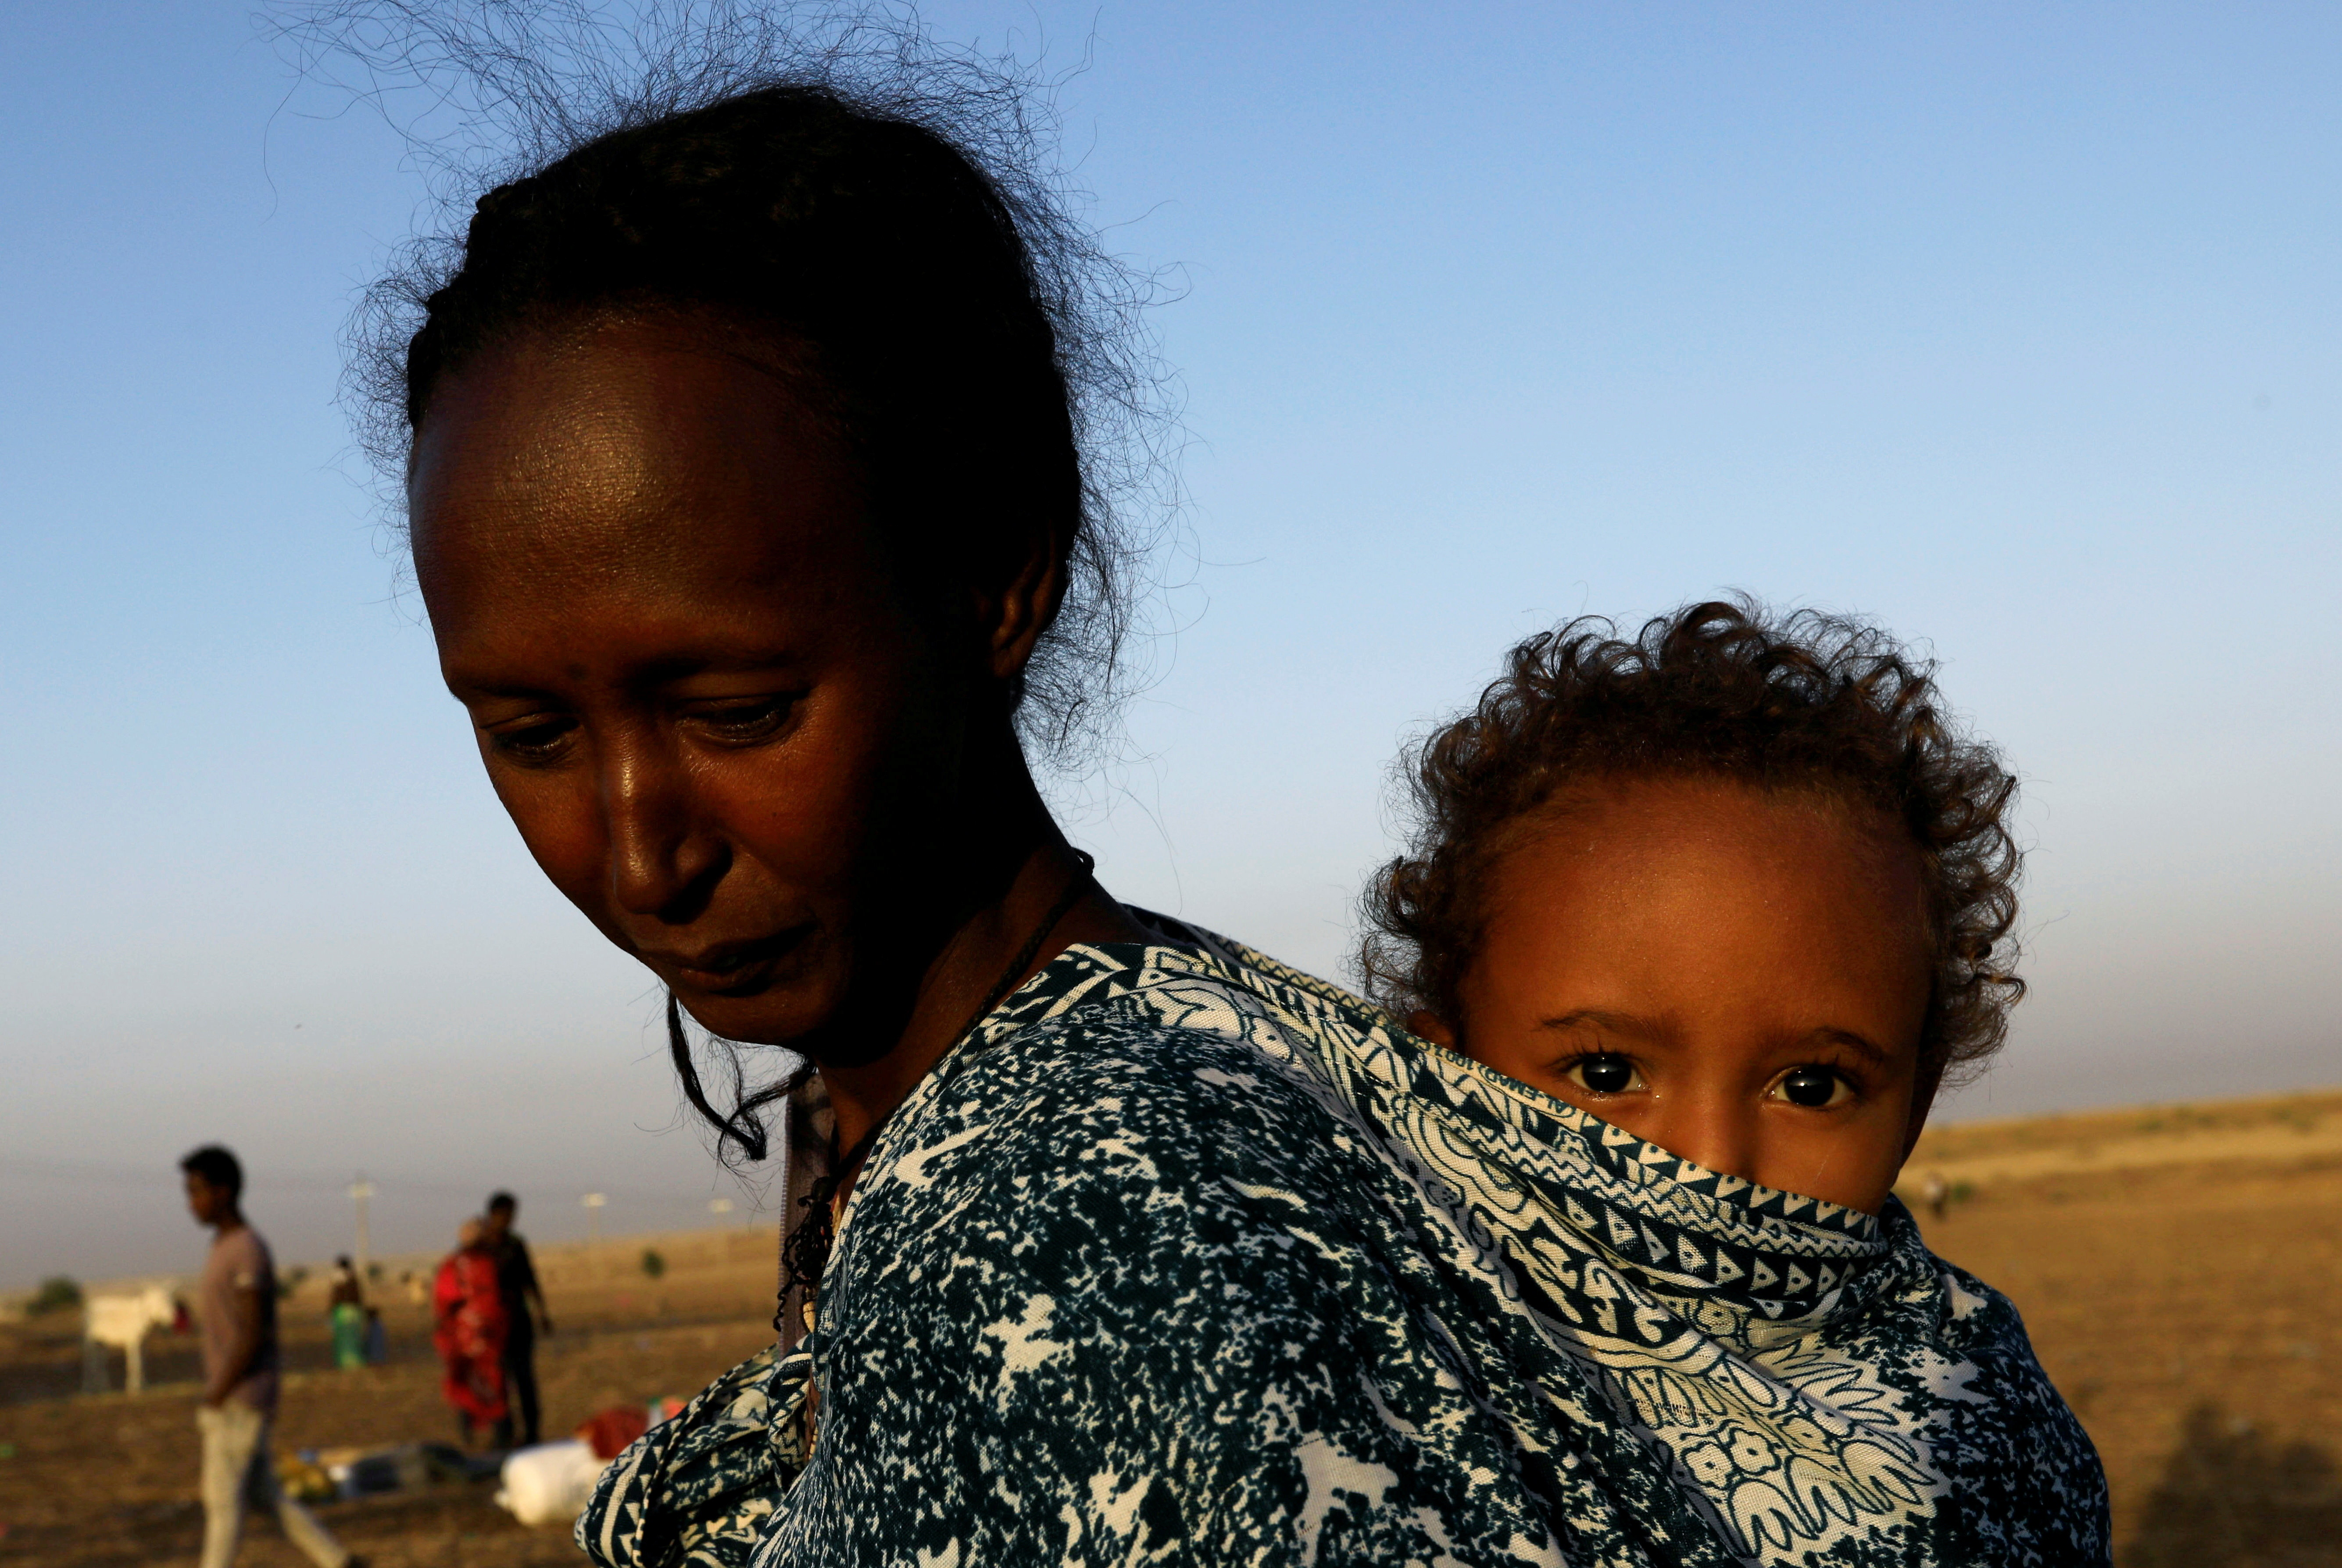 a woman carries a child on her back